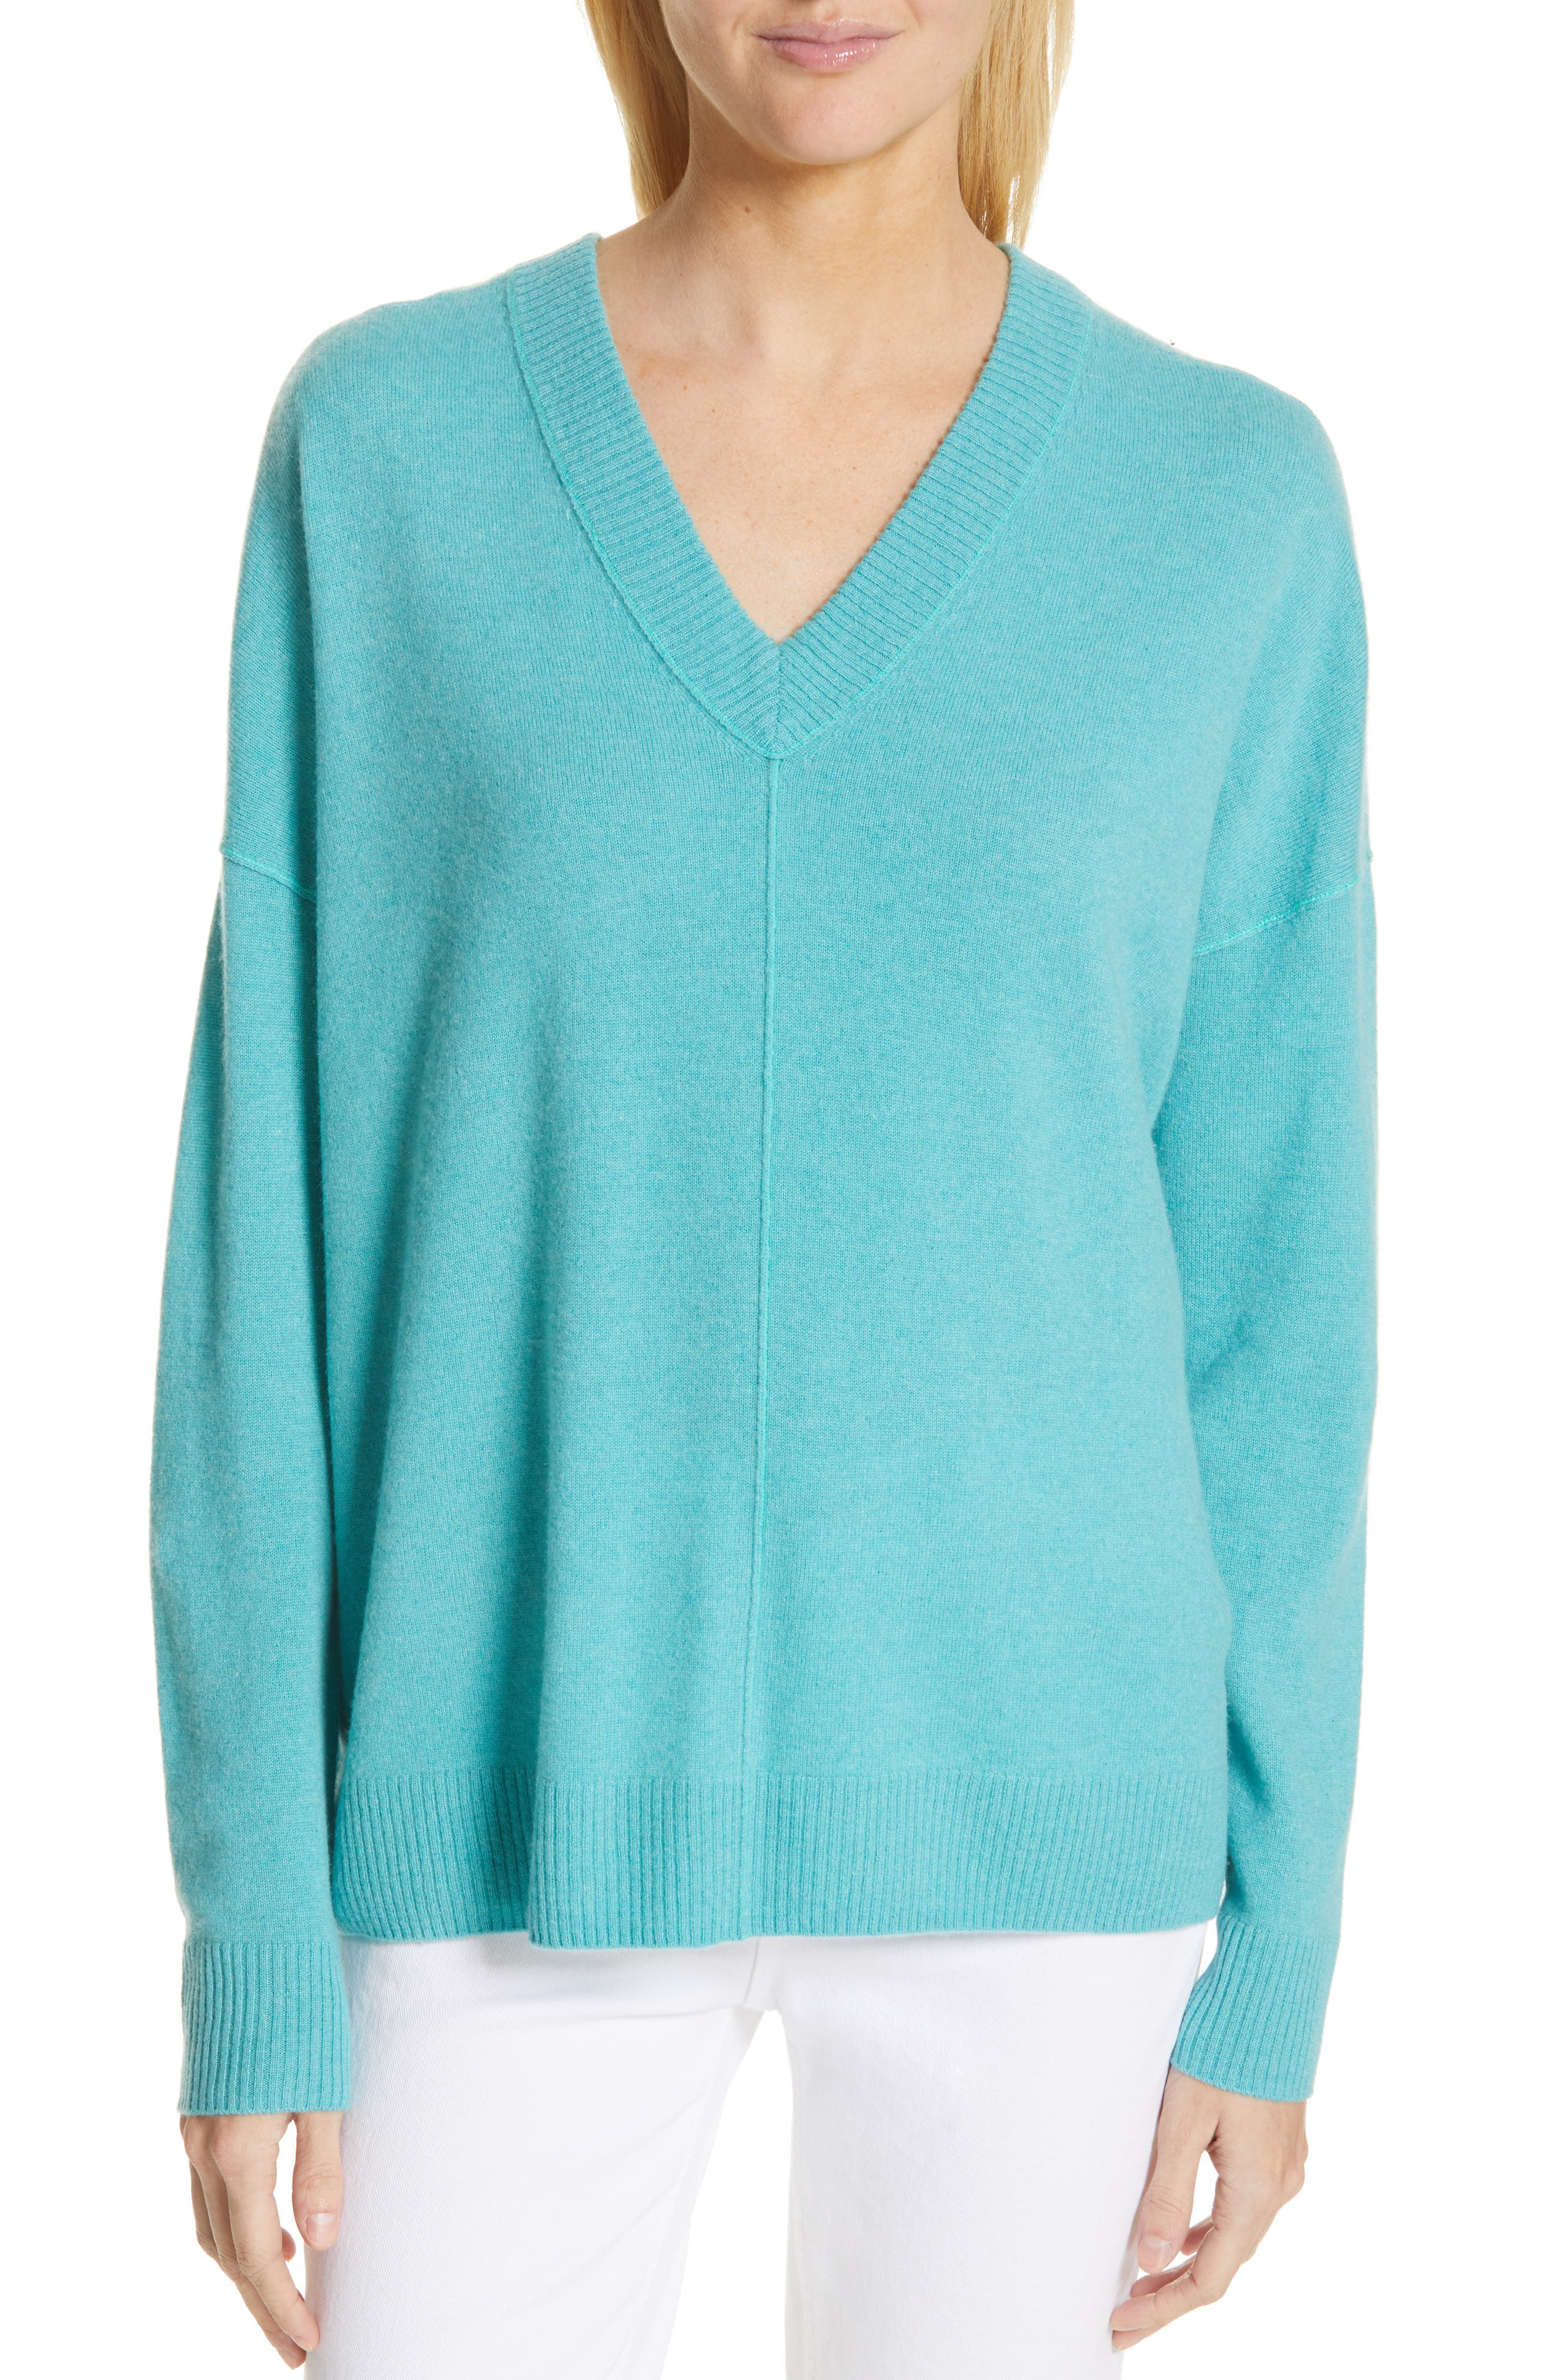 NORDSTROM SIGNATURE Cashmere Double V-Neck Pullover, Main, color, TEAL PORCELAIN